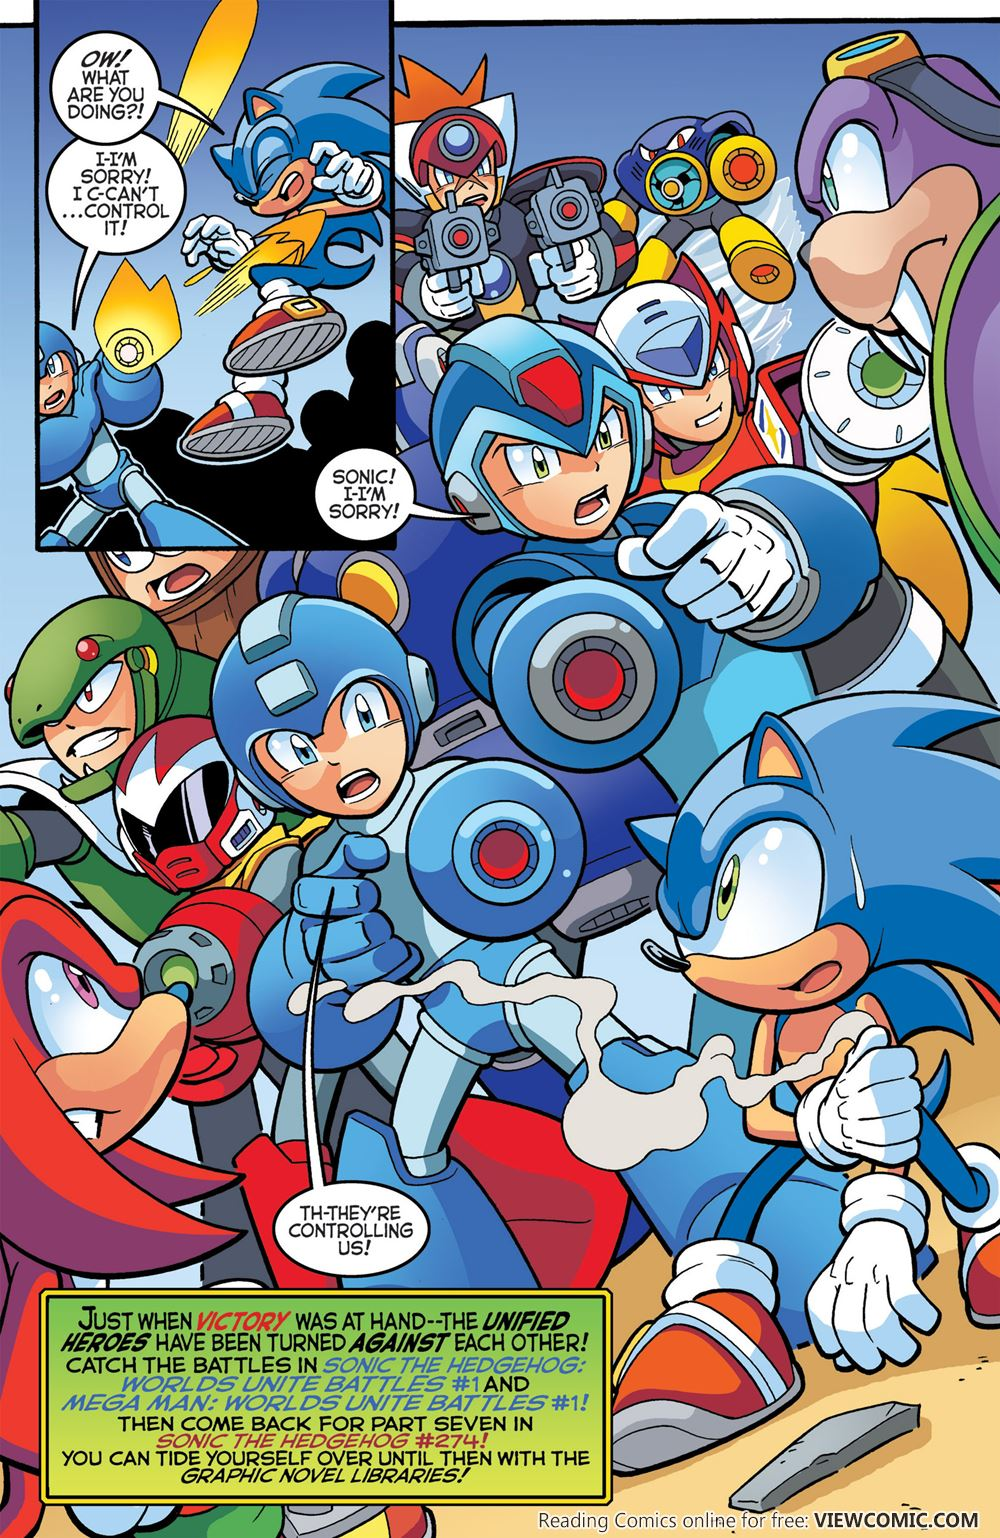 sonic boom viewcomic reading comics online for free 2018